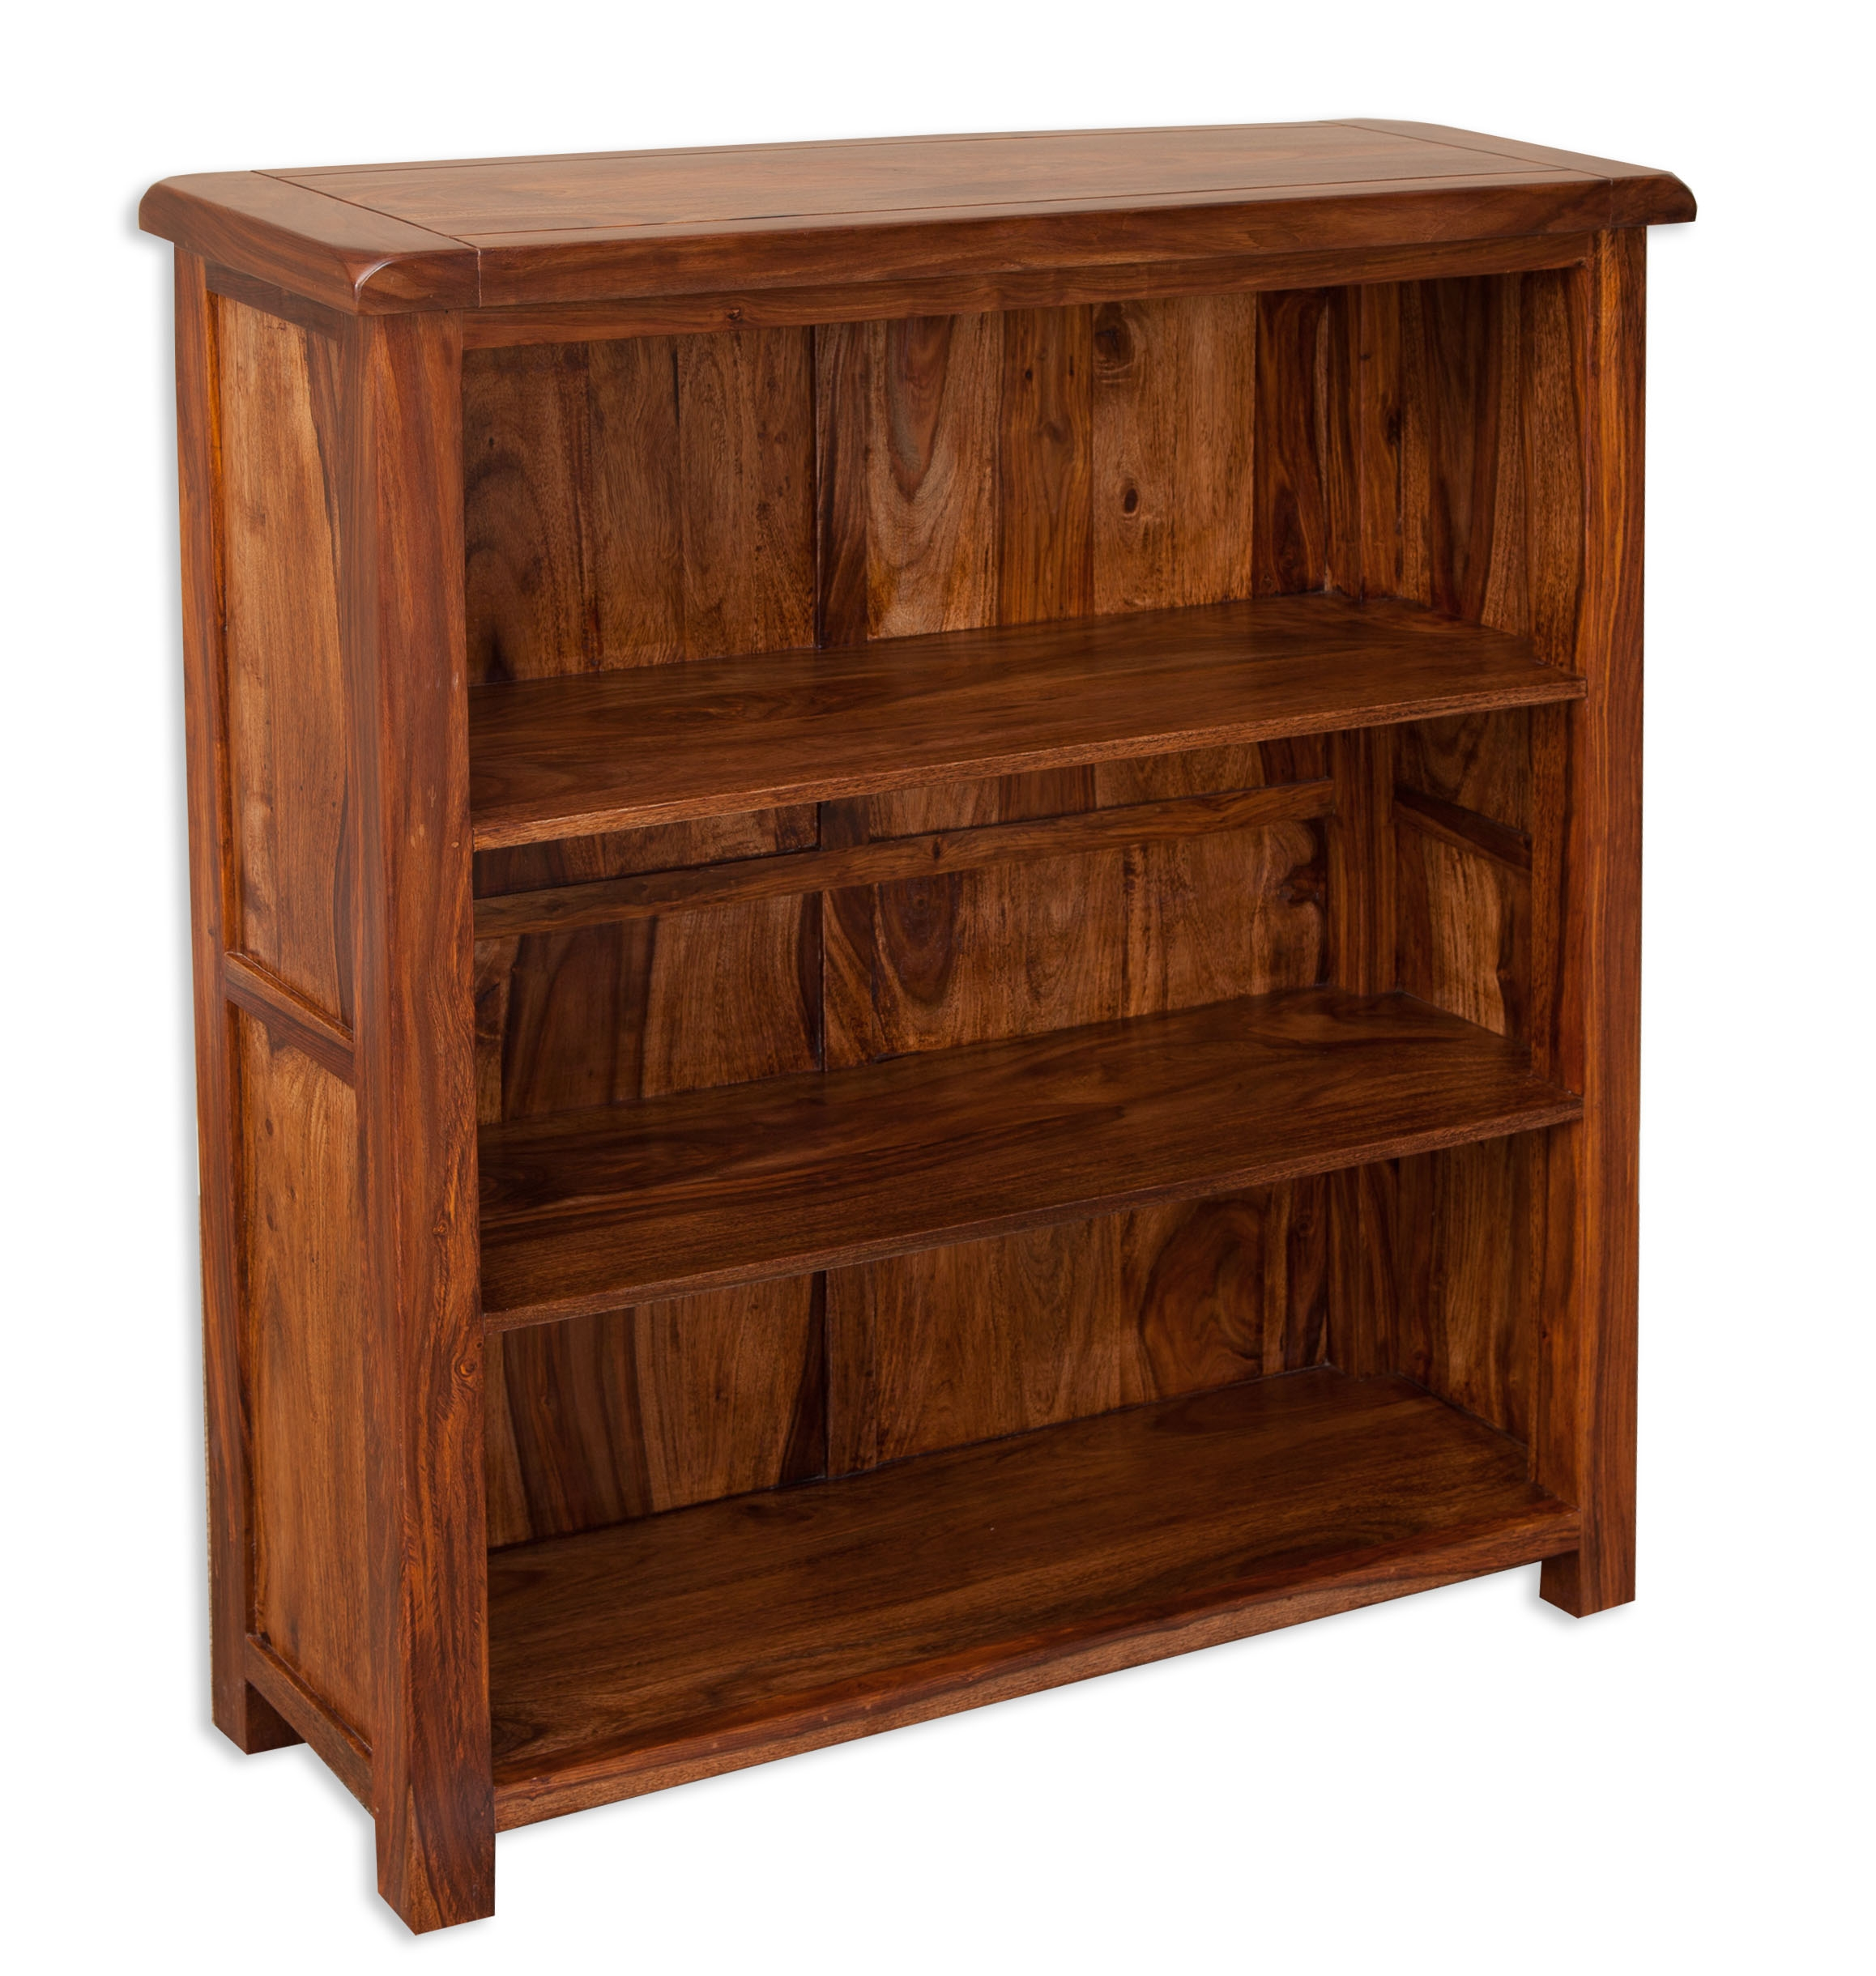 Villa Rustic Sheesham Small Bookcase